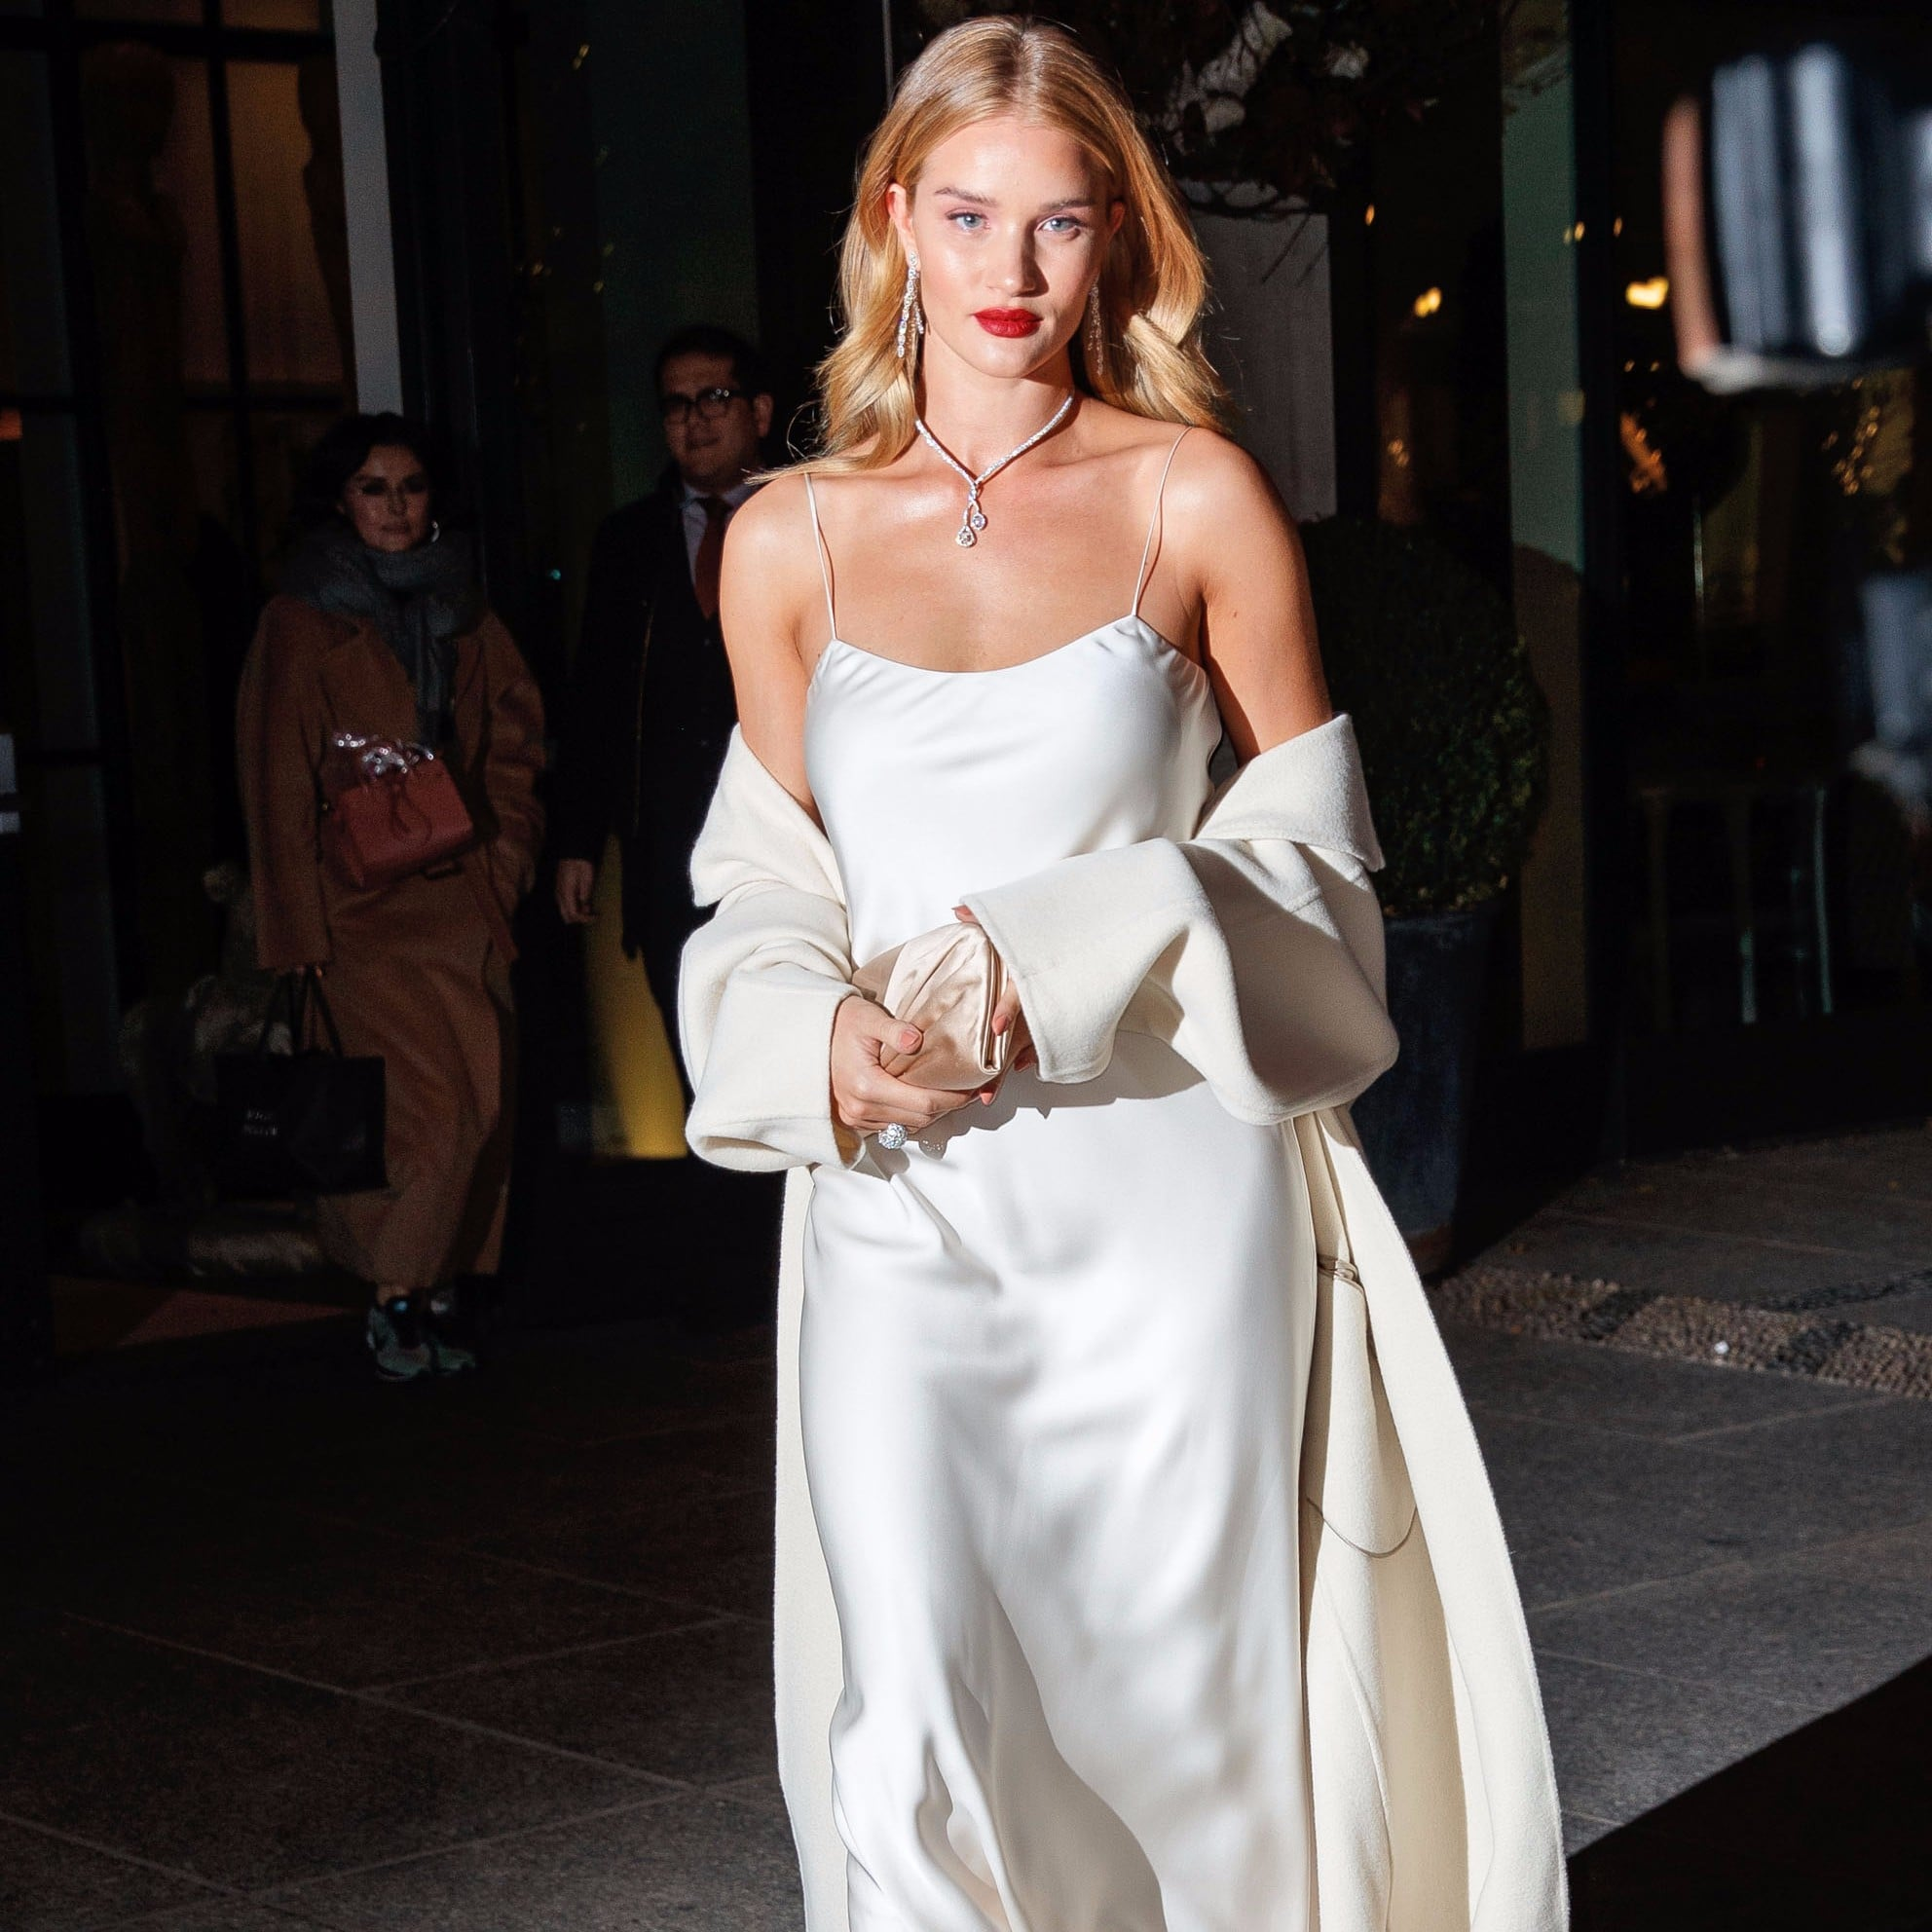 ee236f4138a2b Rosie Huntington-Whiteley's White Slip Dress | POPSUGAR Fashion